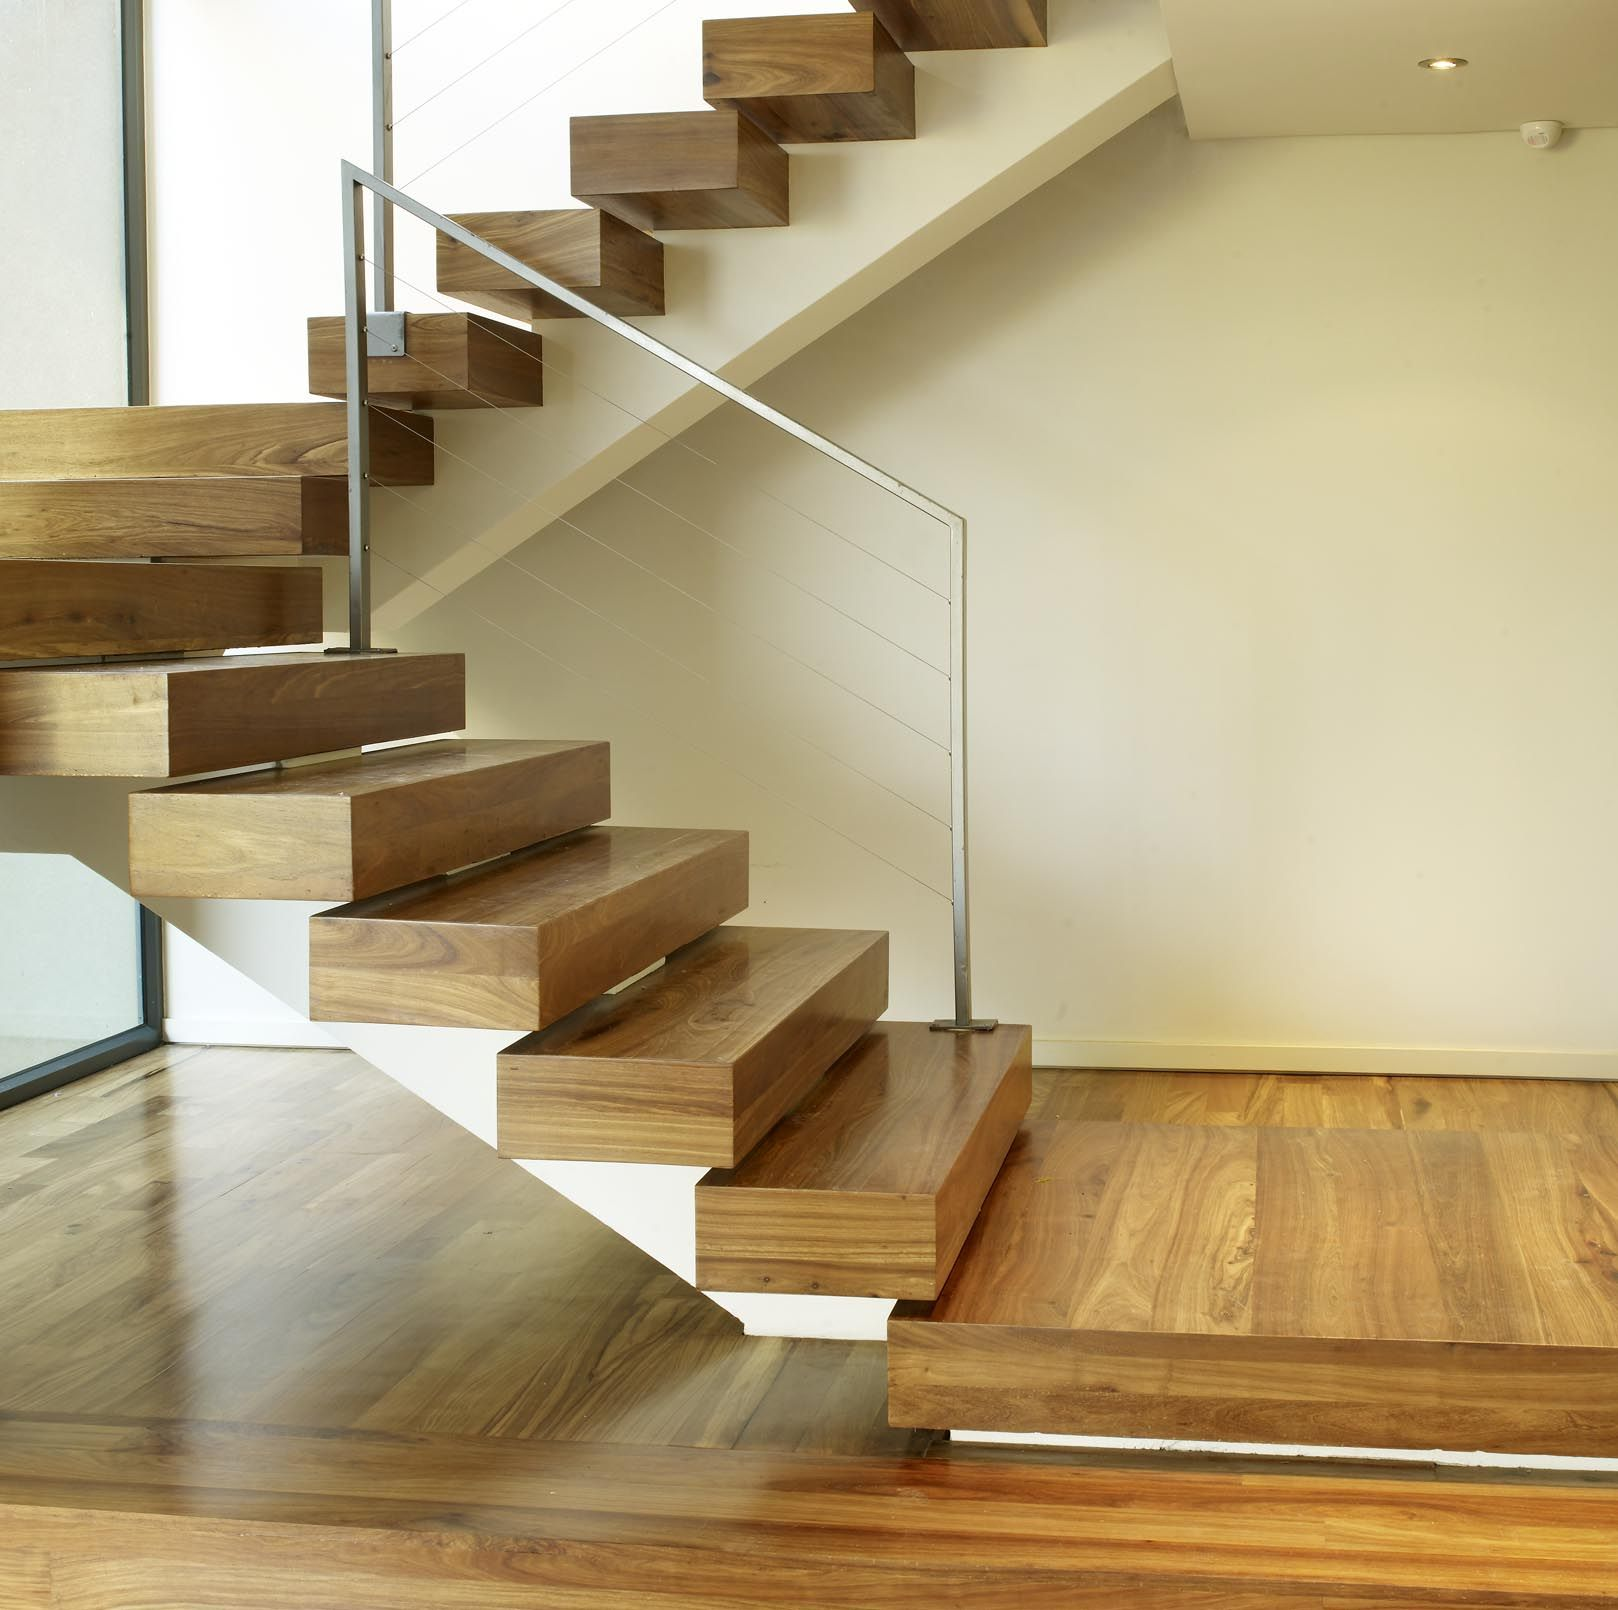 Short Stairs Ideas: Trendy Oak Wooden Step Foot Ladder With Iron Handrail As